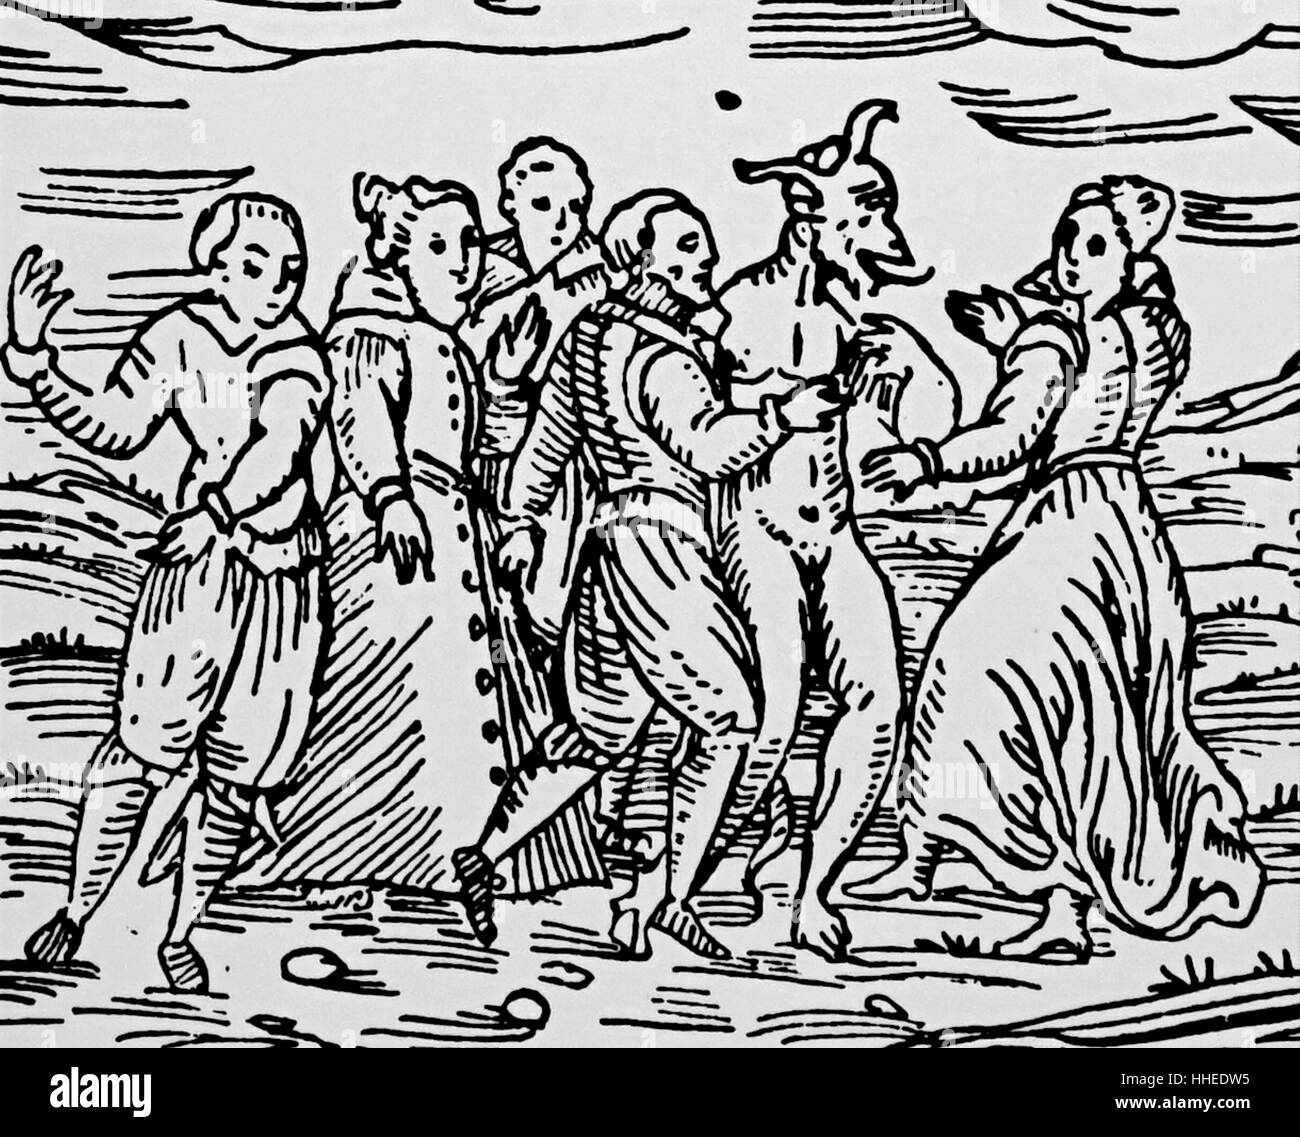 Woodcut depicting a group of witches and warlocks dancing with the Devil at the Sabbath from Compendium Maleficarum - Stock Image